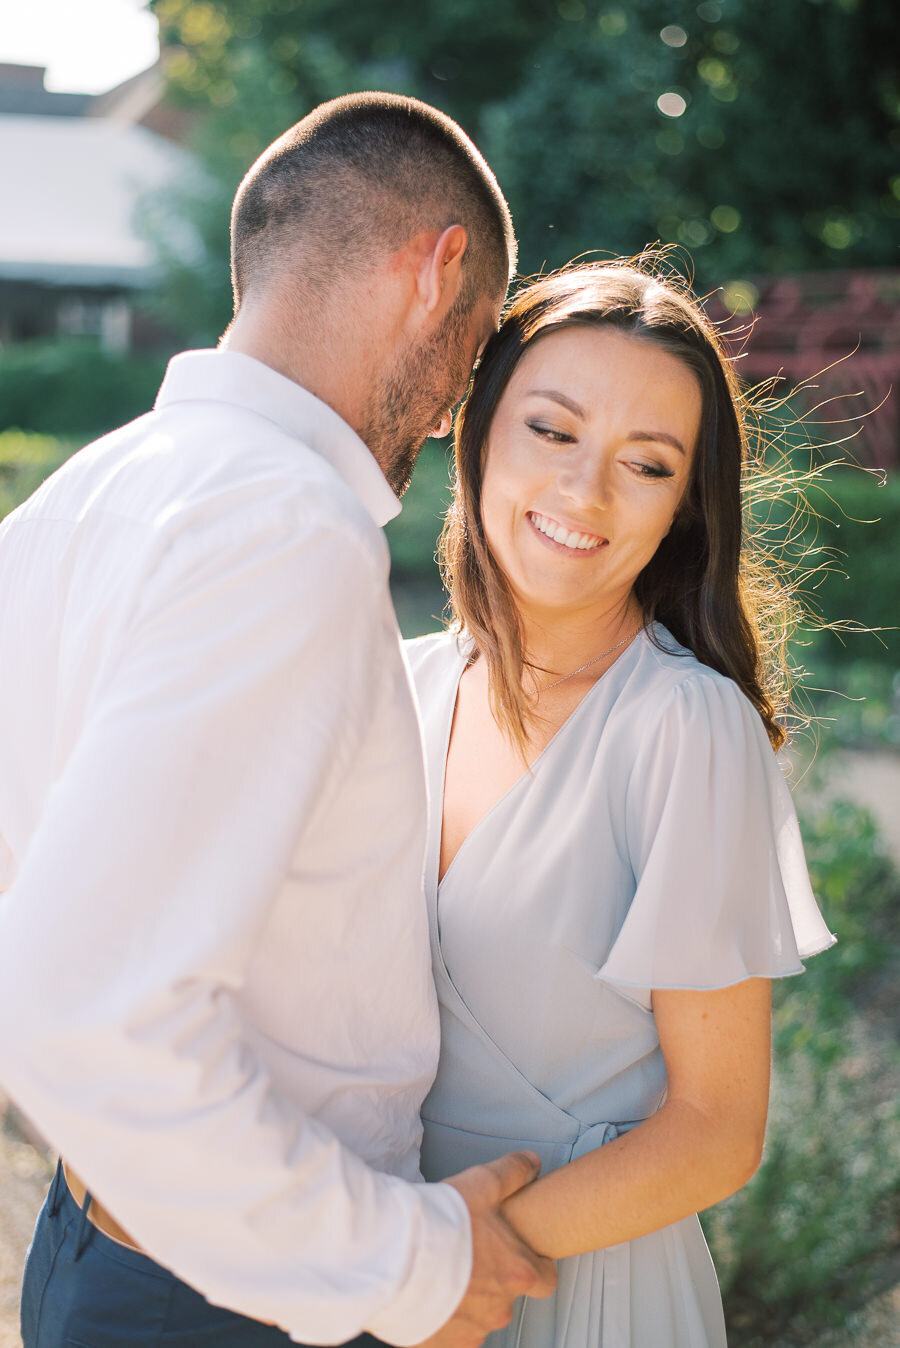 William_Paca_Gardens_Engagement_Session_Megan_Harris_Photography-2